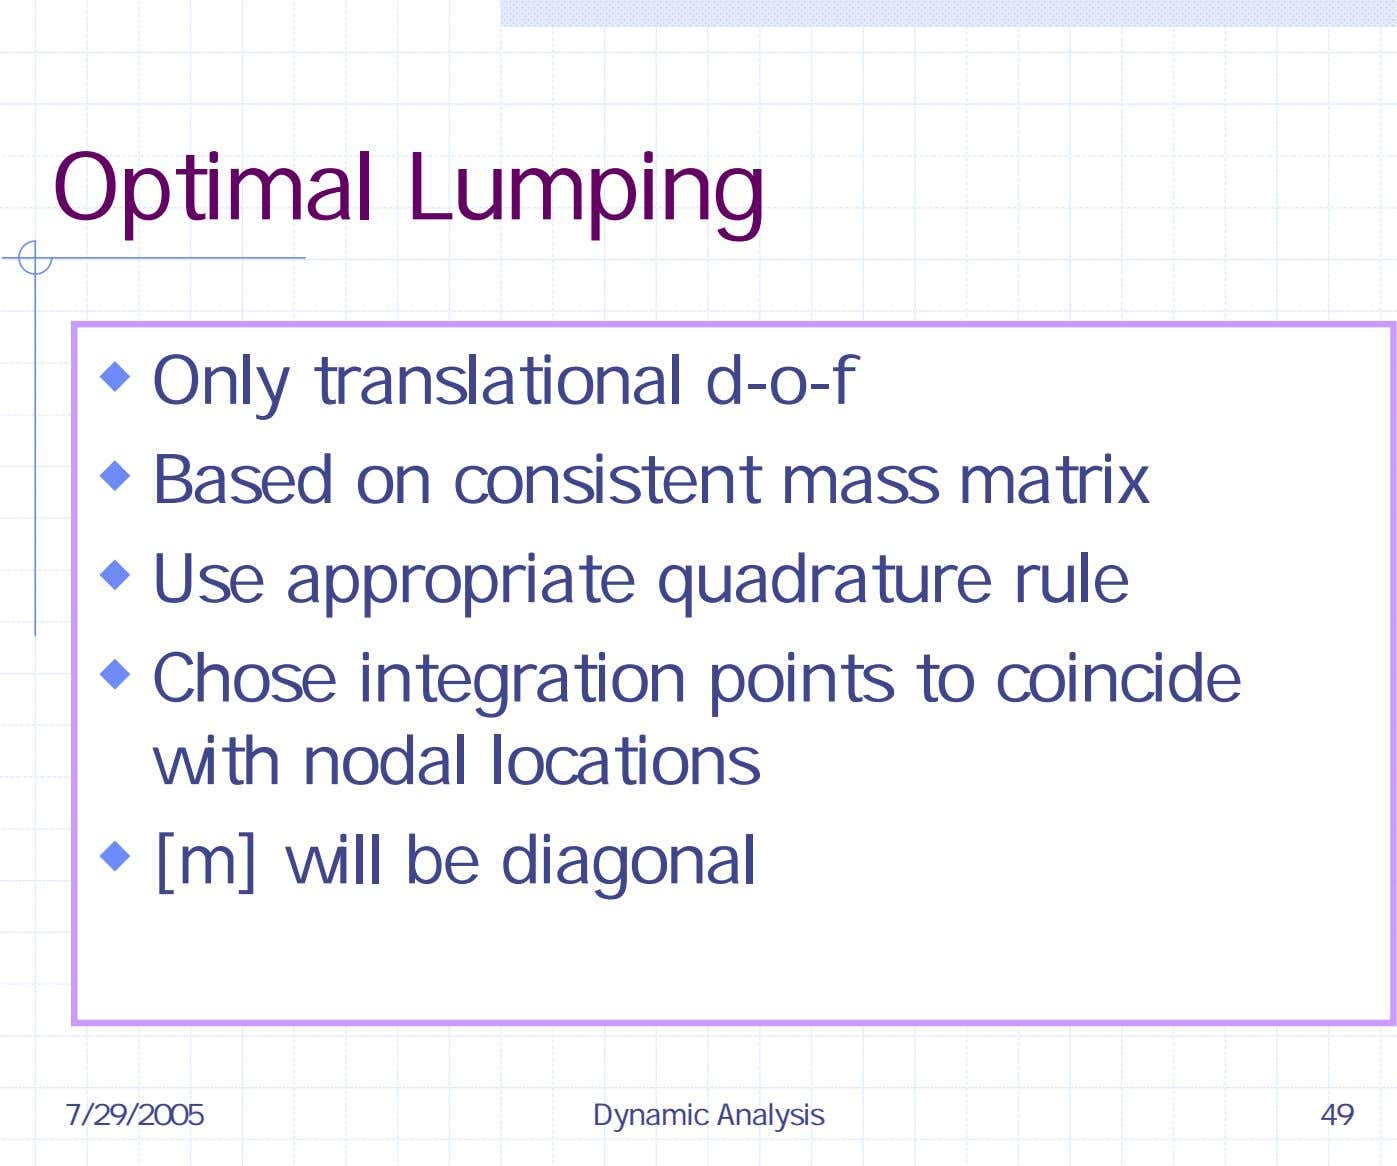 Optimal Lumping Only translational d-o-f Based on consistent mass matrix Use appropriate quadrature rule Chose